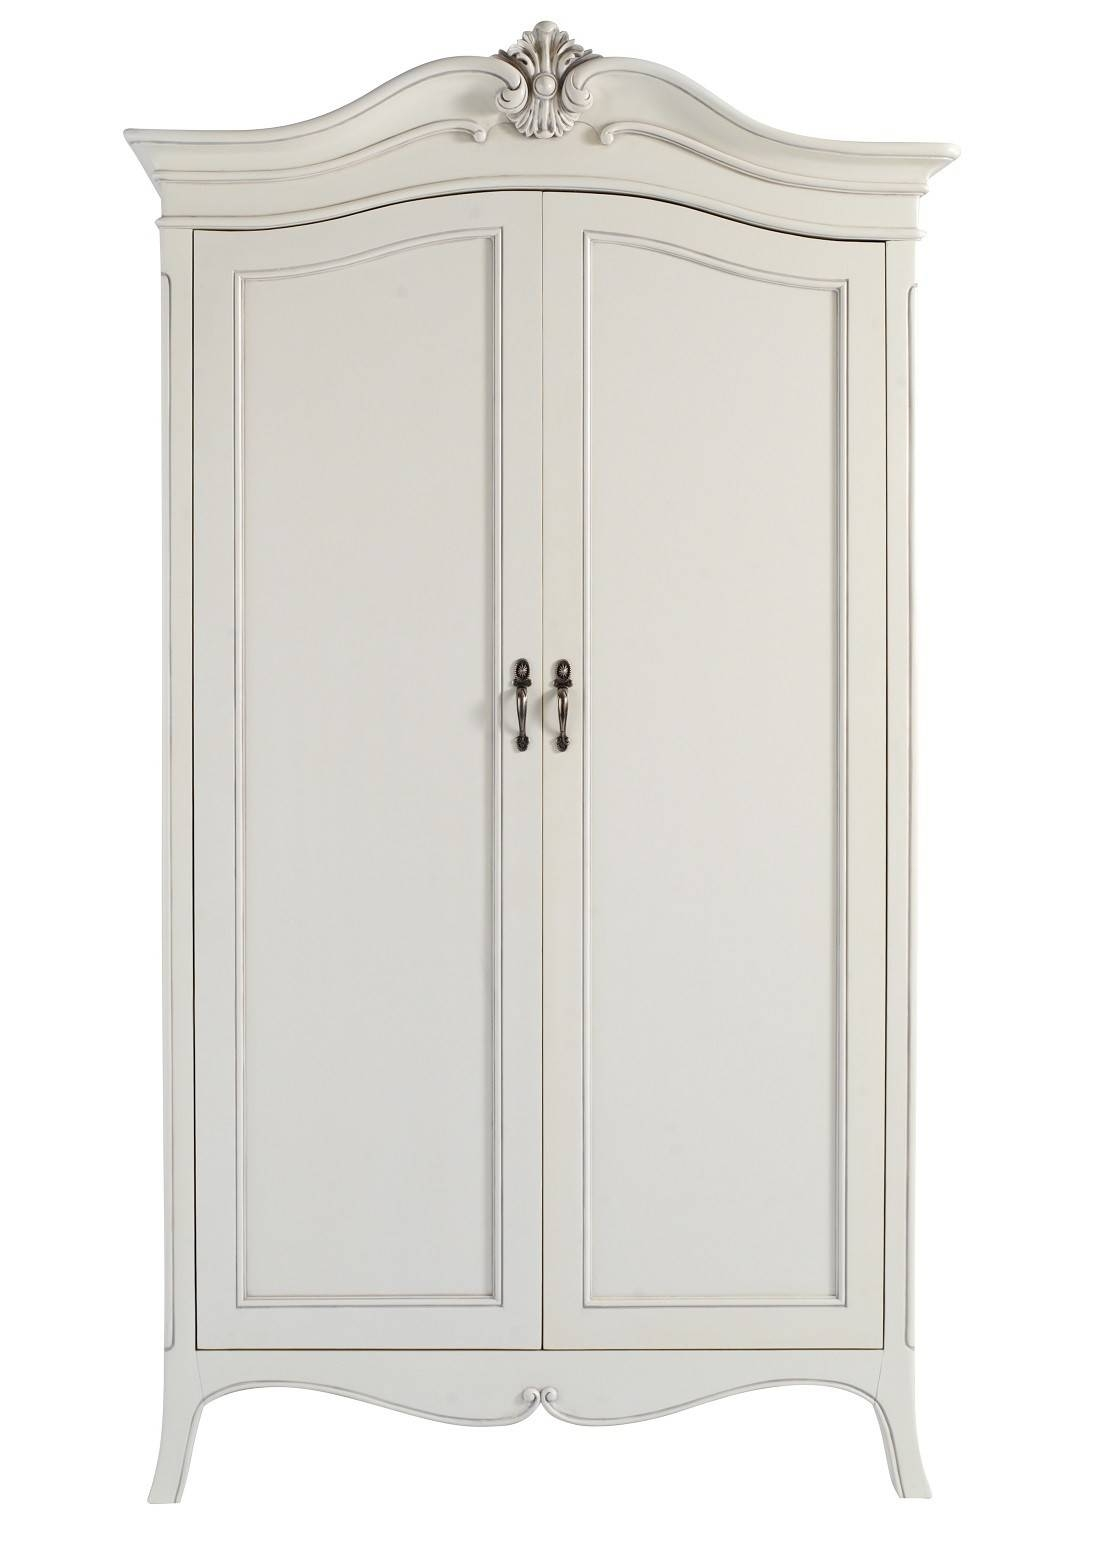 Louis French Ivory Painted 2 Door Double Wardrobe | Oak Furniture Uk within Painted Wardrobes (Image 6 of 15)